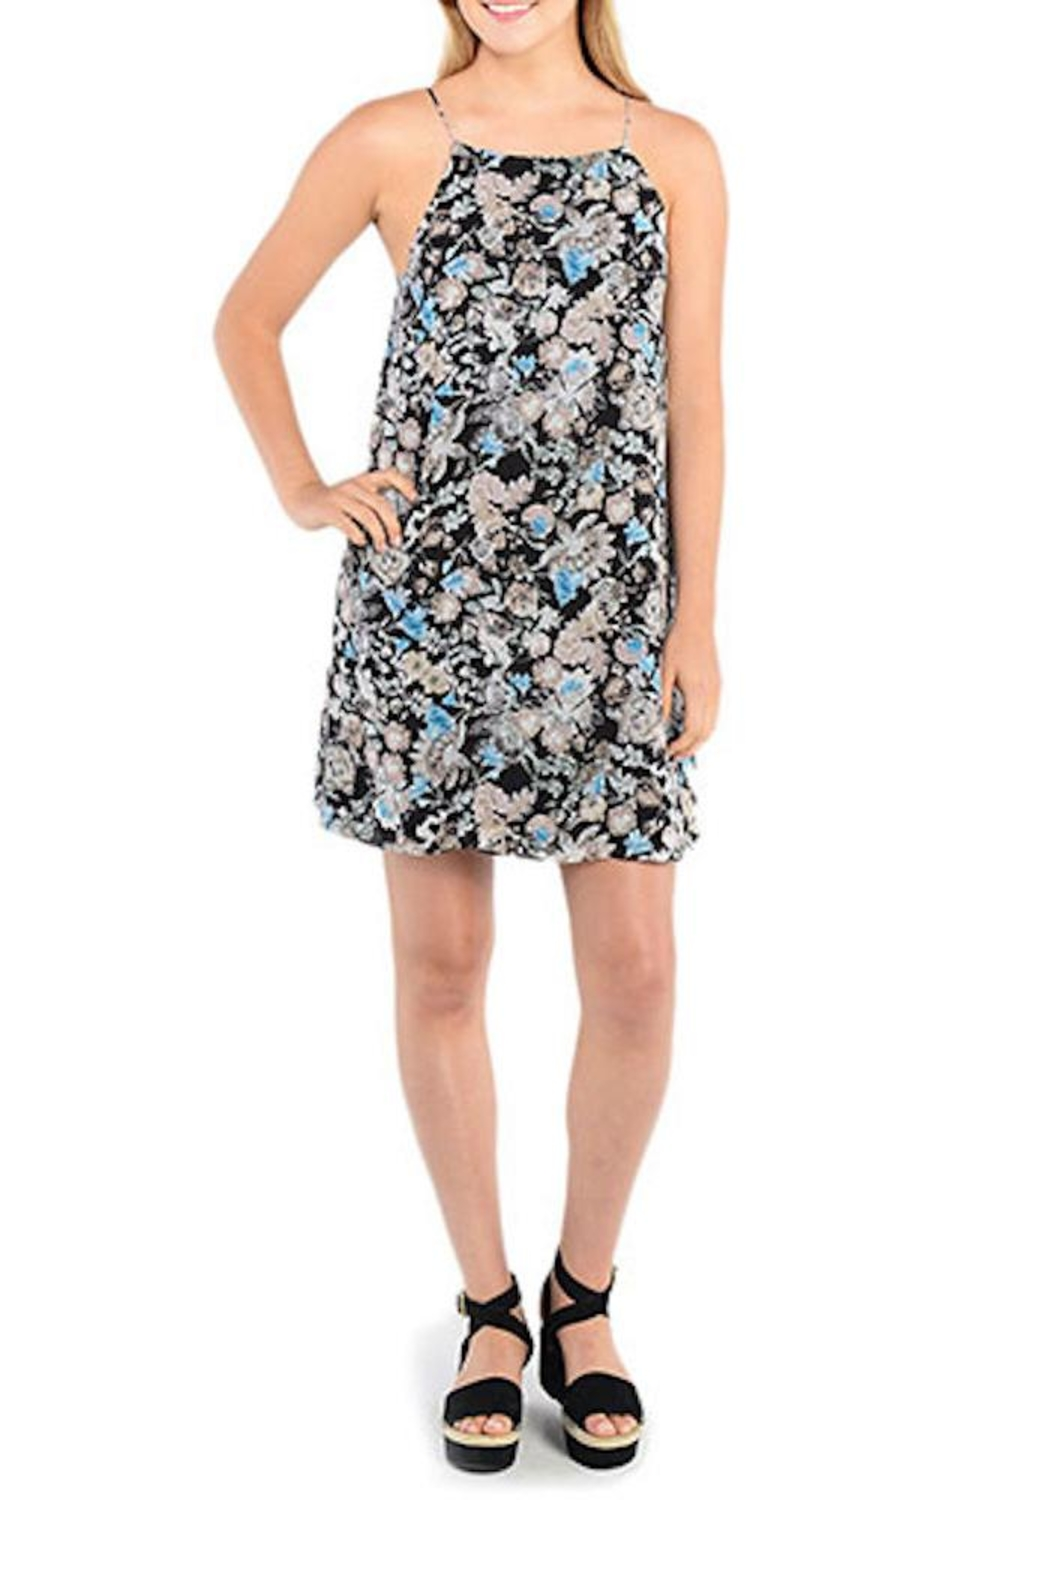 Kensie Dark Floral Shift Dress - Main Image